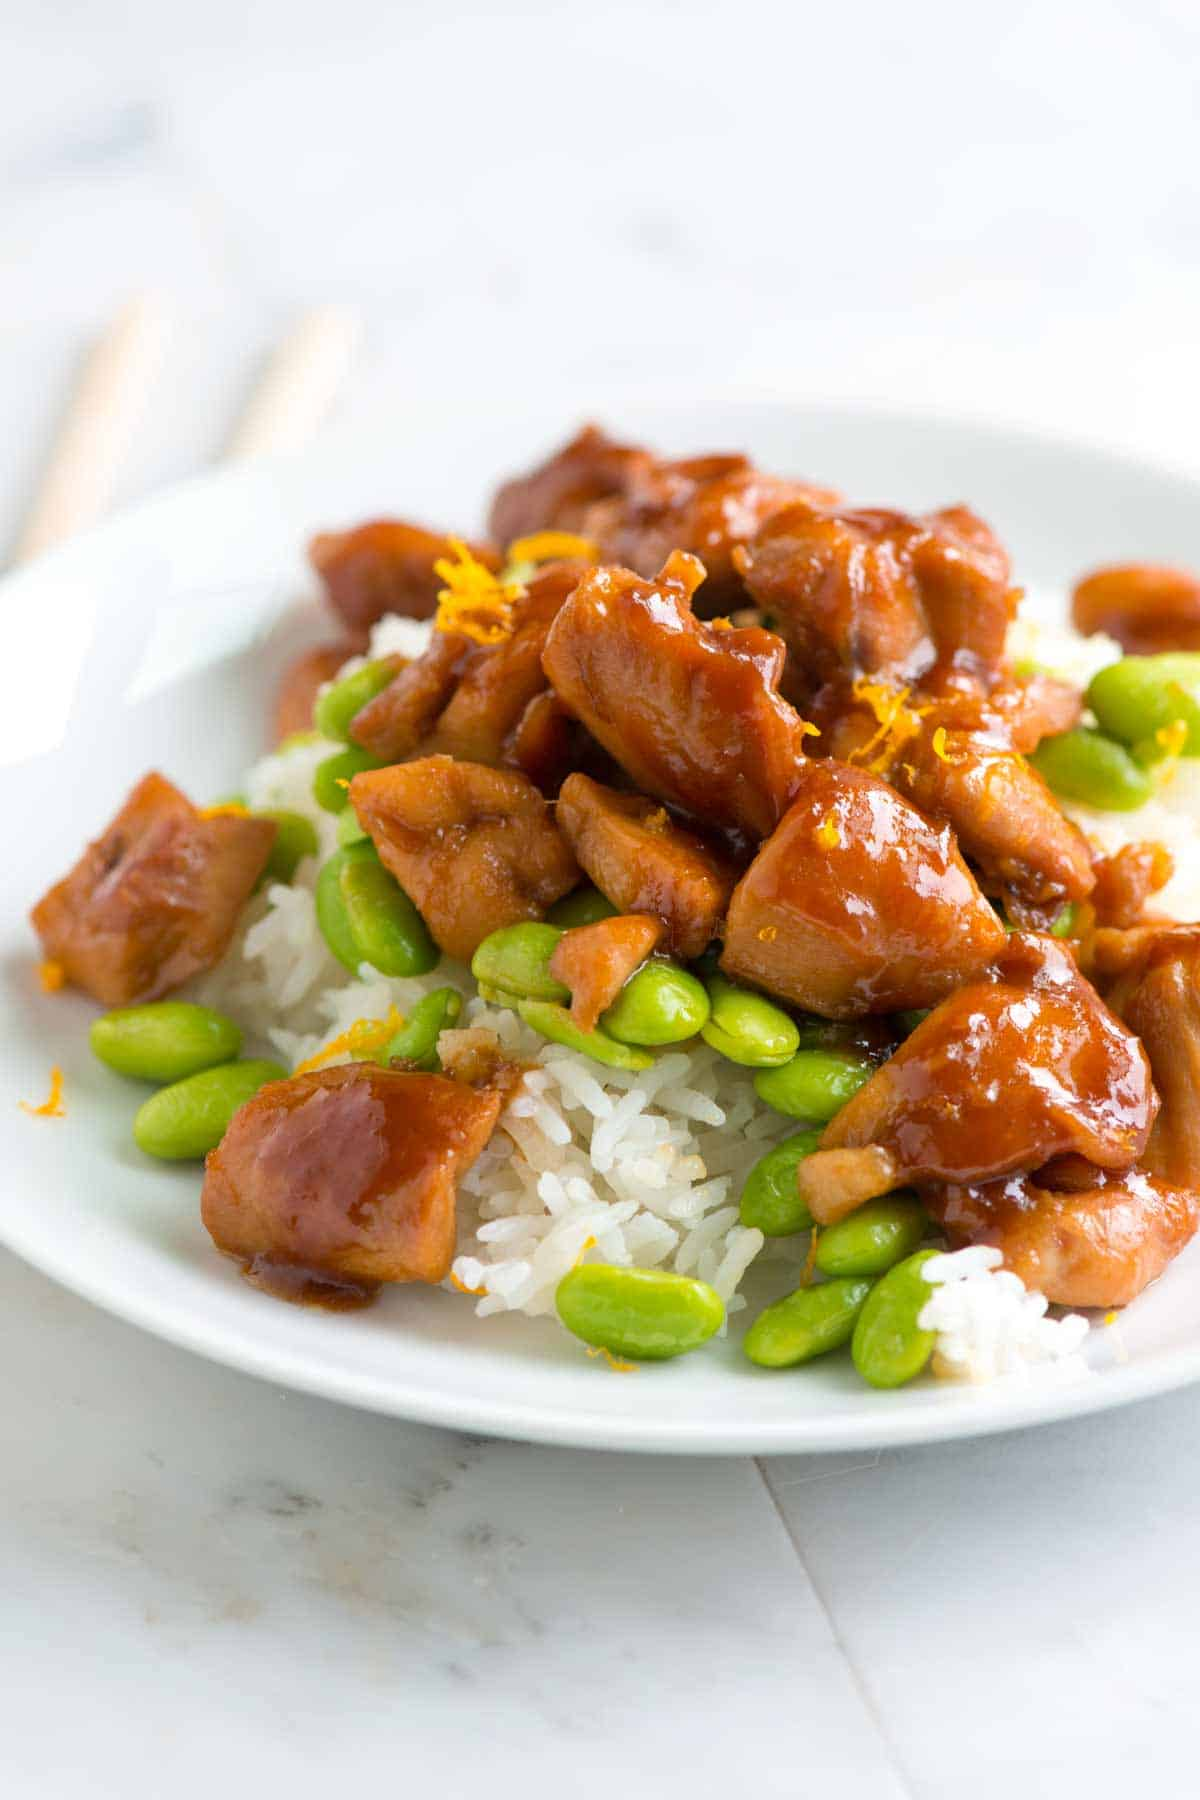 How to Make Chicken Teriyaki in 30 Minutes